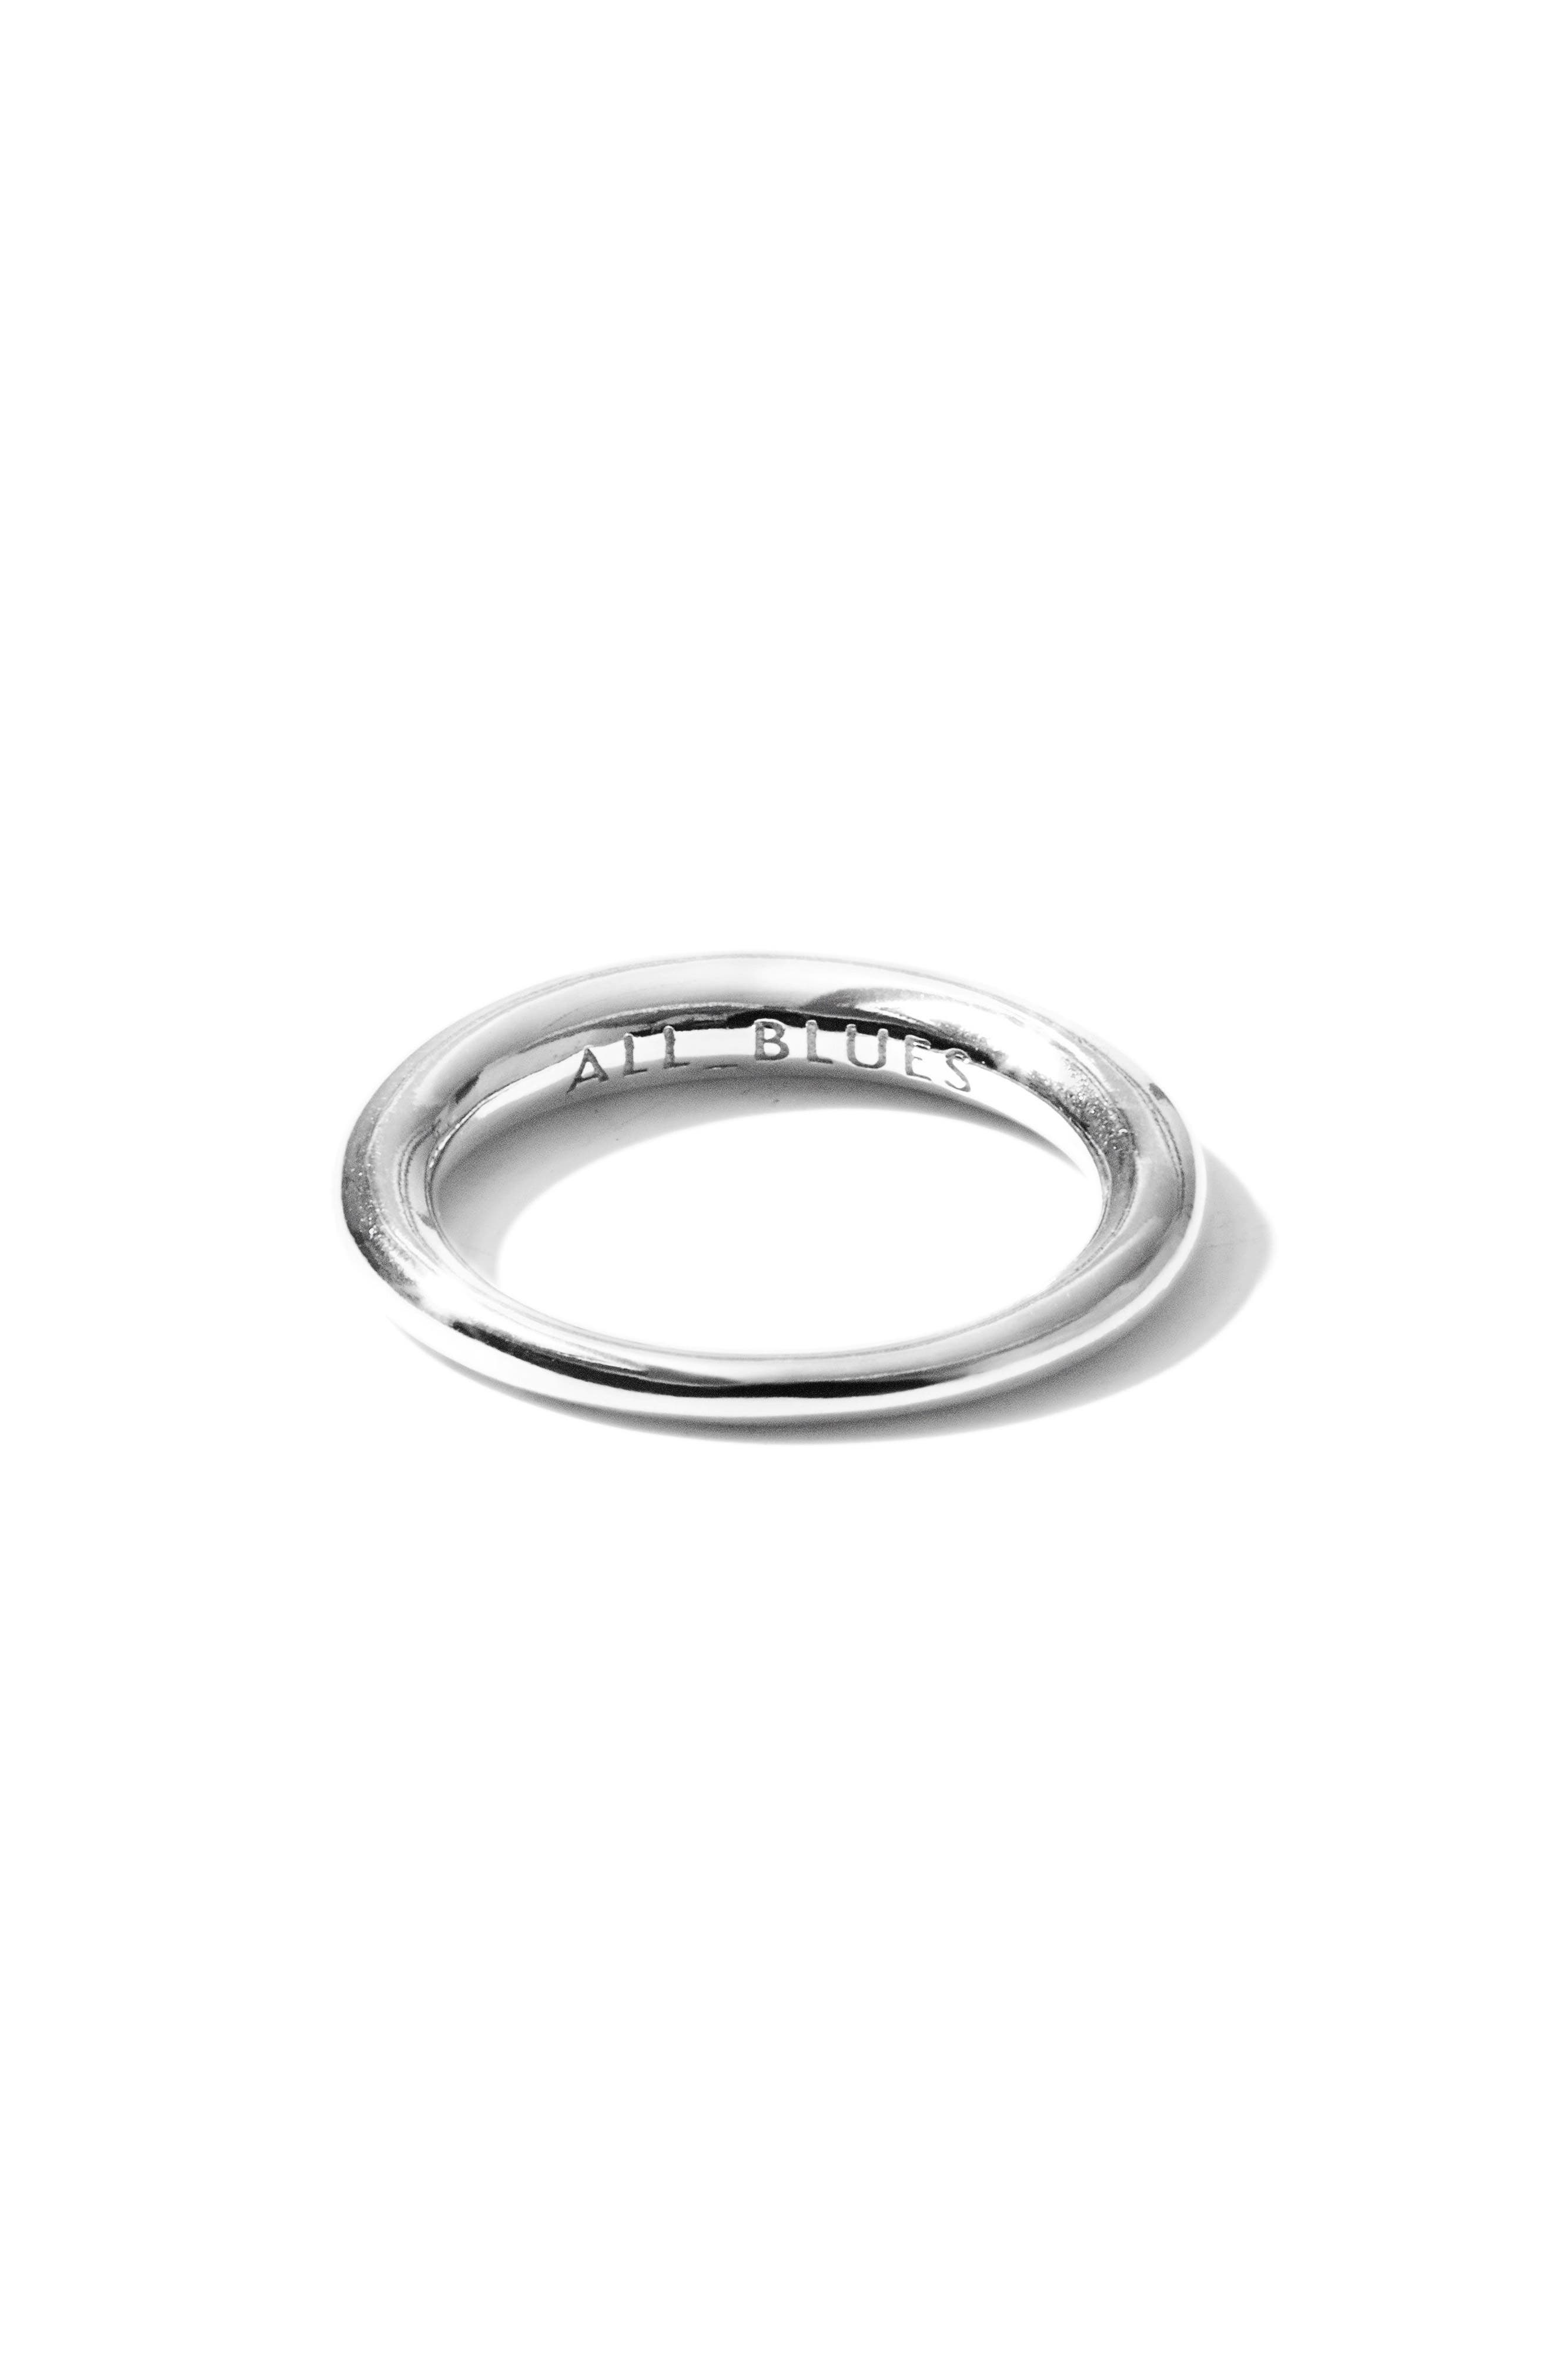 Small Snake Polished Silver Ring,                             Alternate thumbnail 3, color,                             POLISHED SILVER